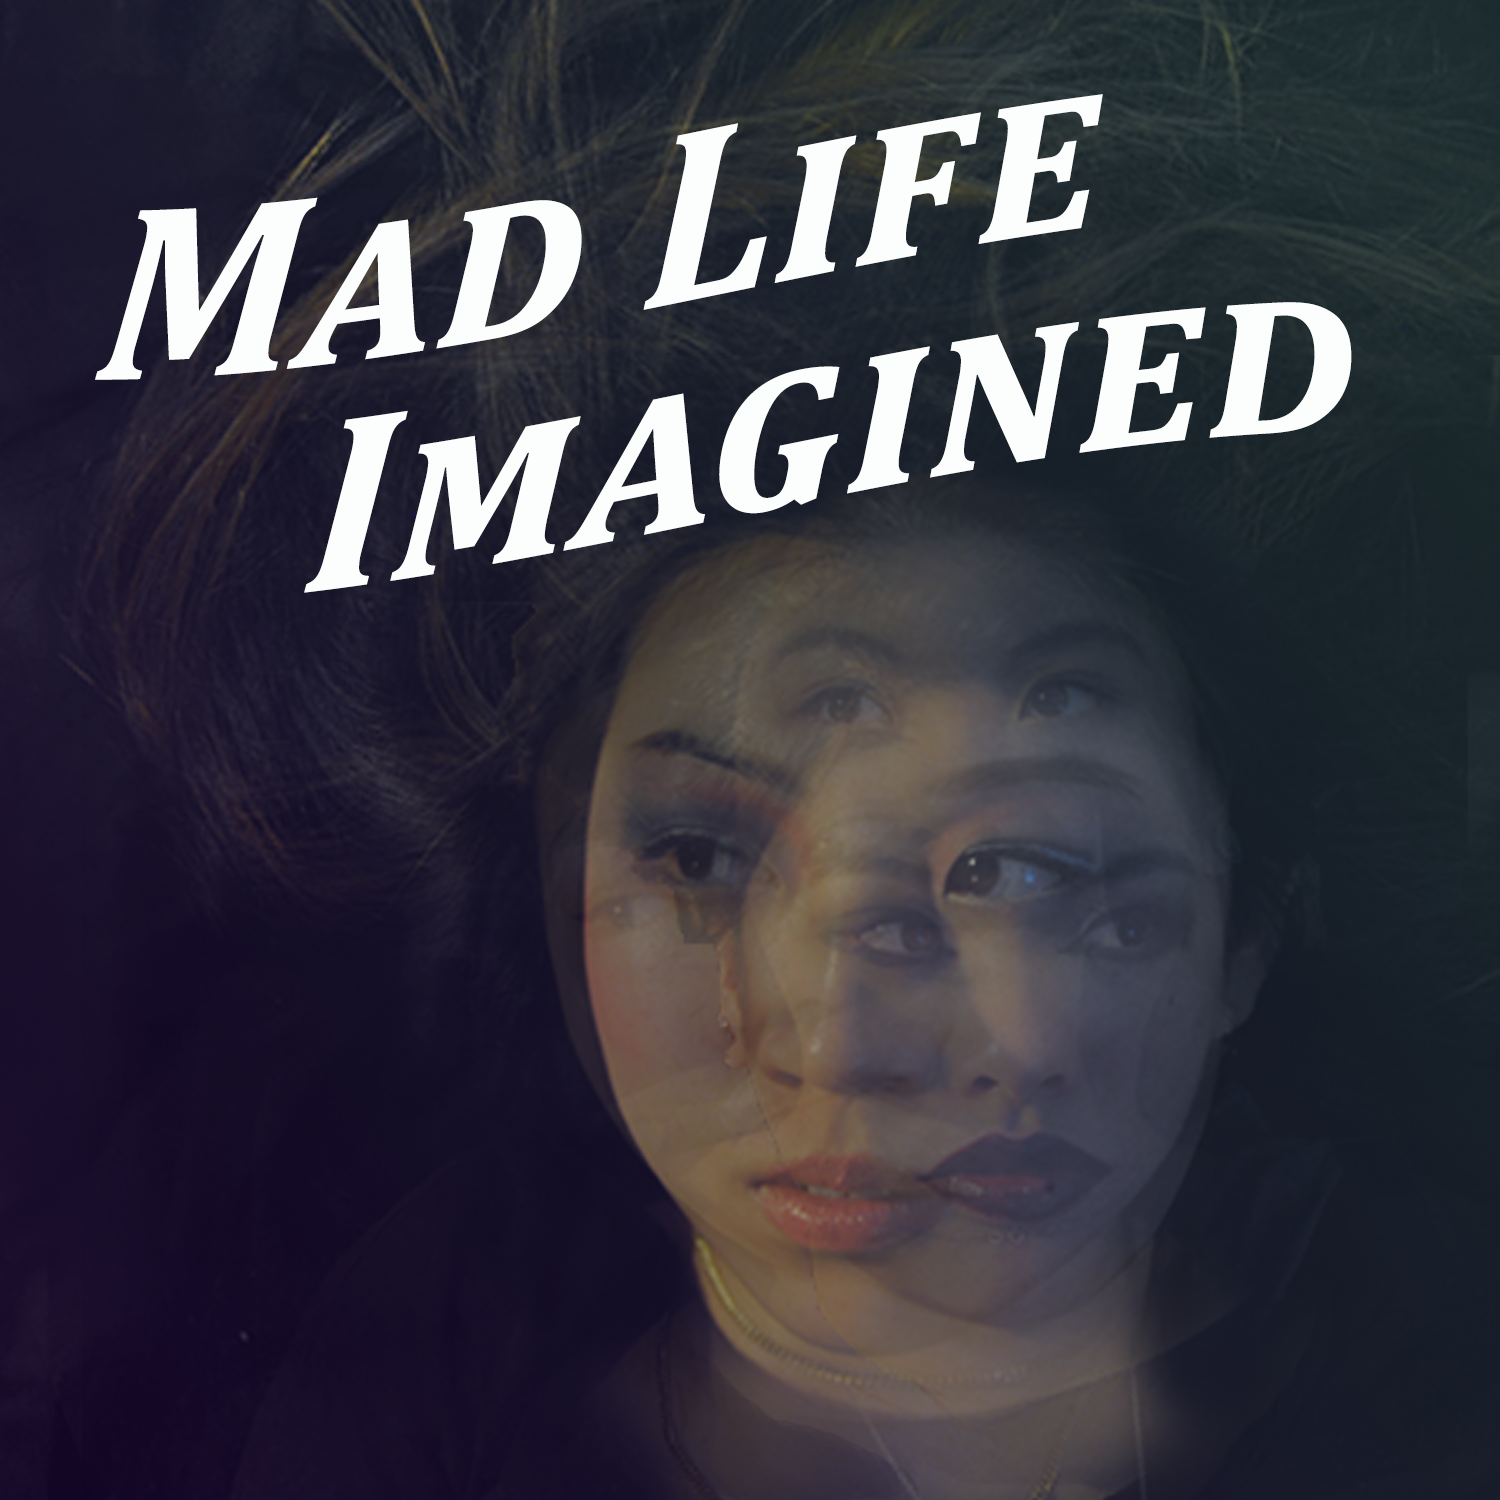 A play written by Bertha Lee. On Stage at the Toronto Fringe Festival 2015. Graphics by Bertha Lee.